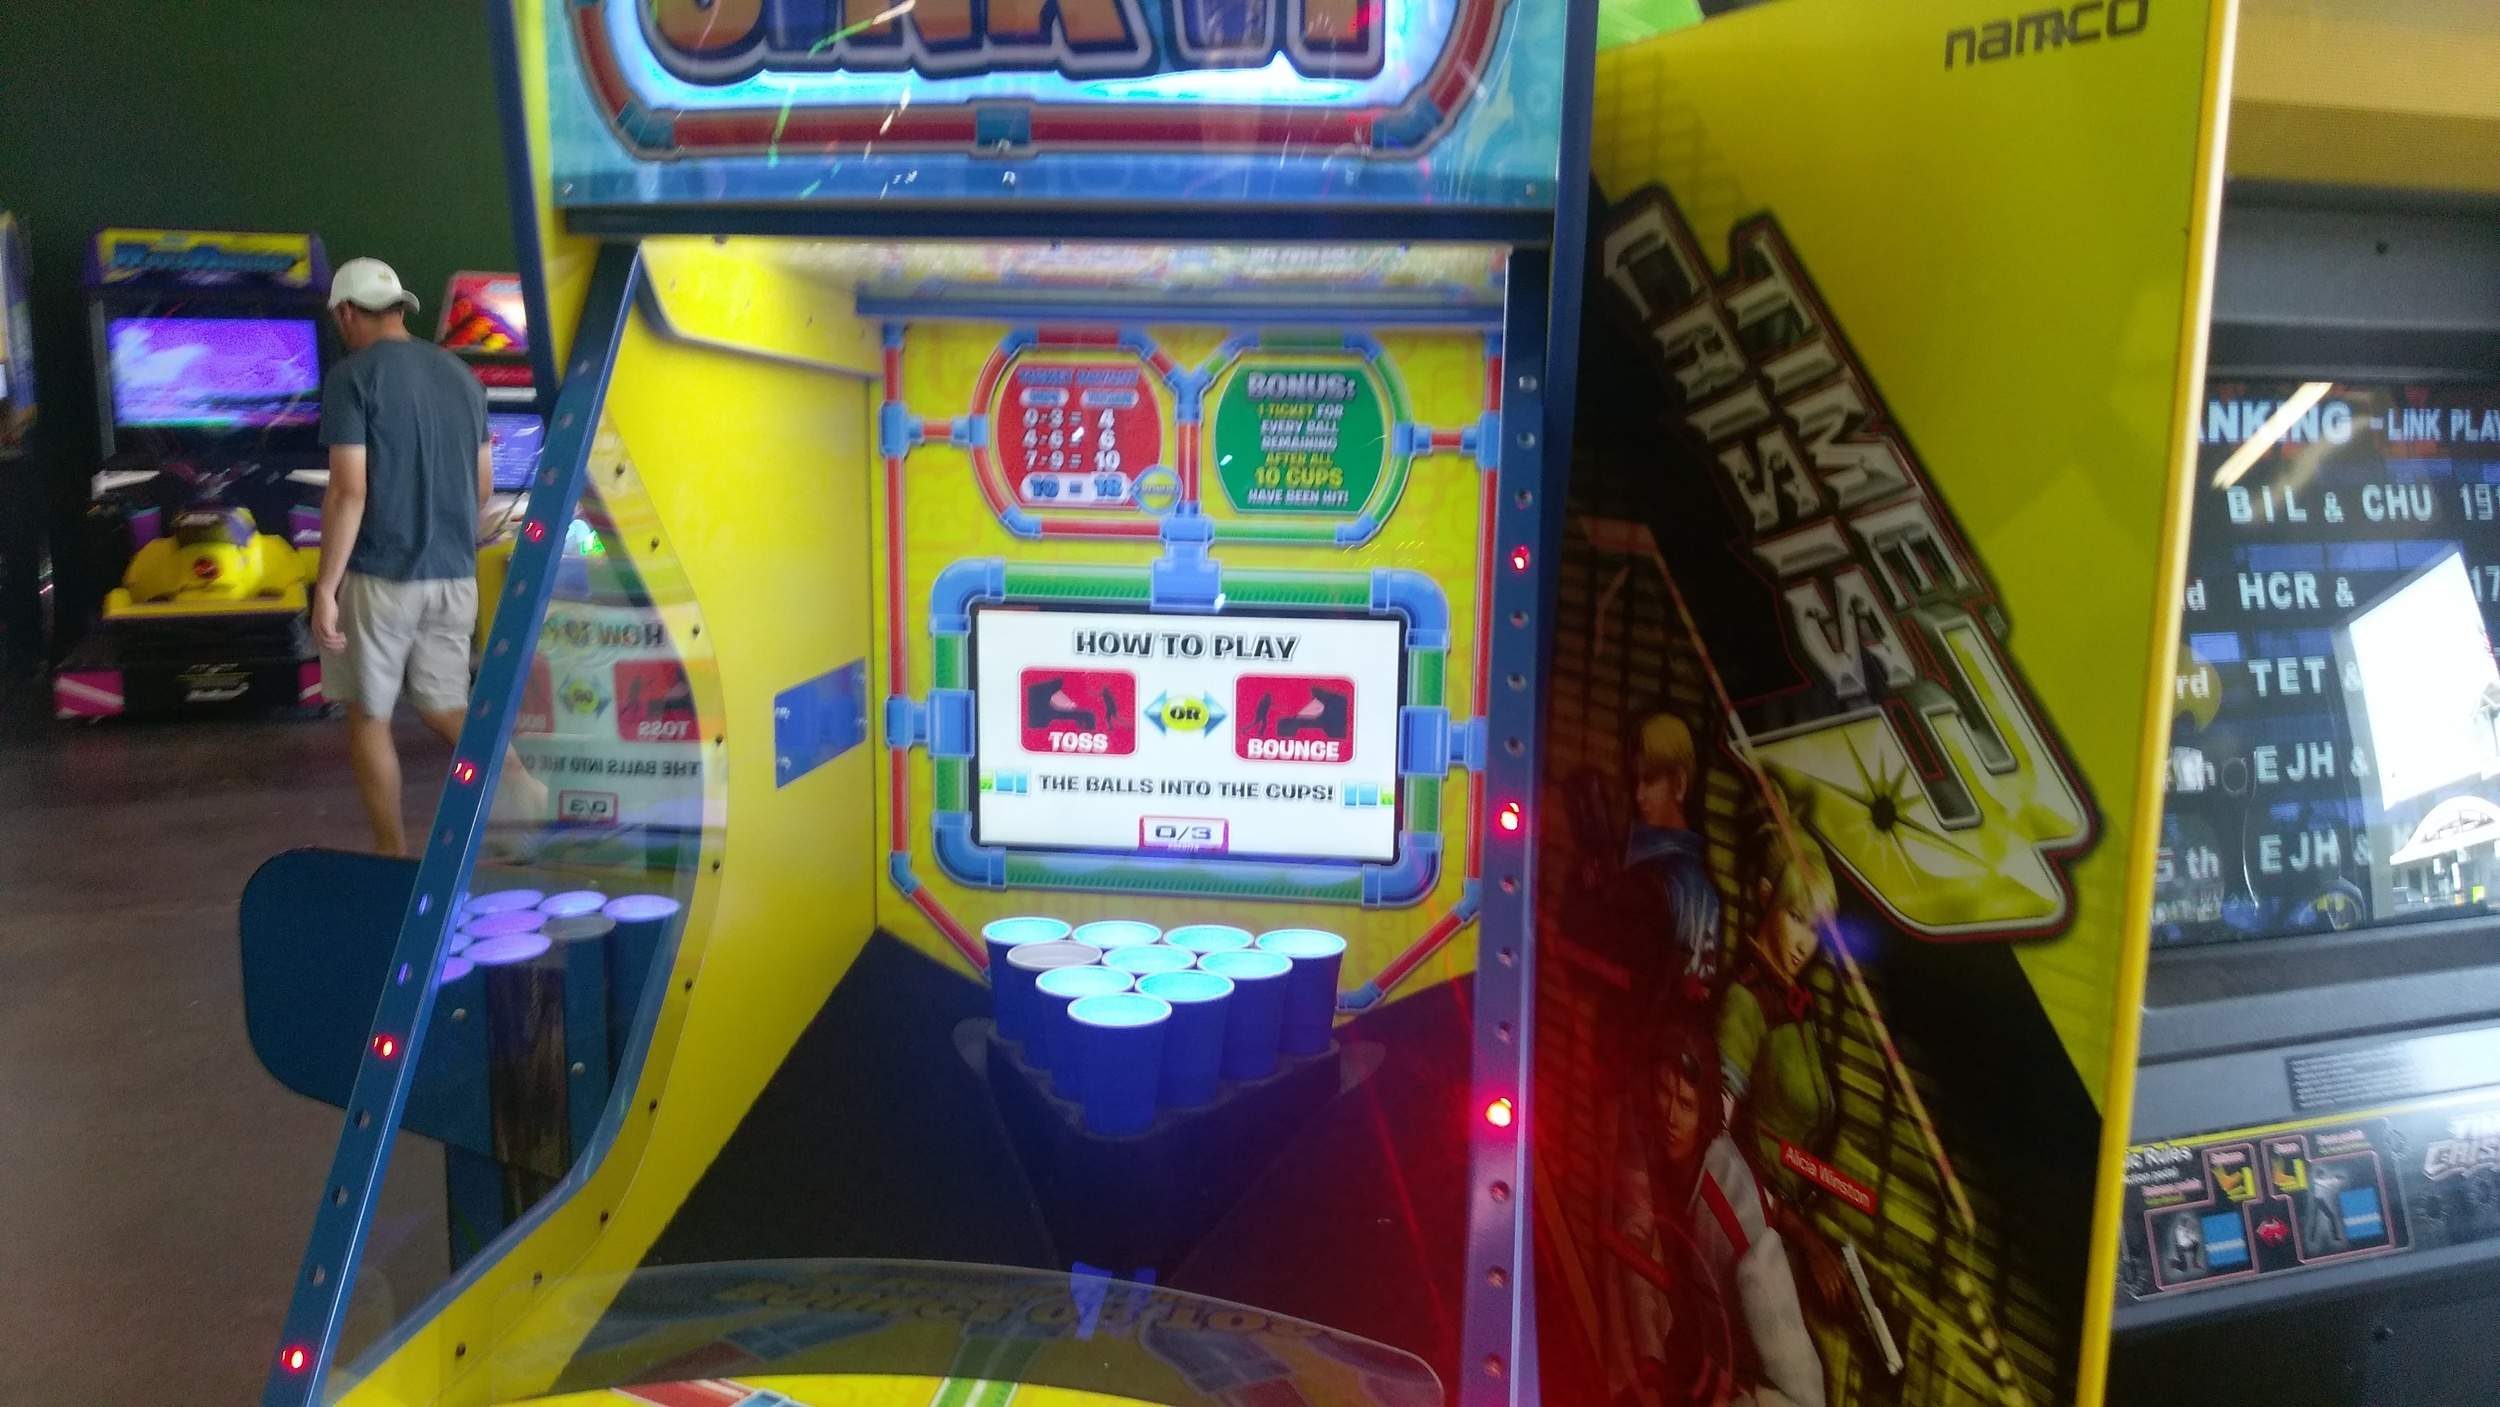 Beerpong the arcade game